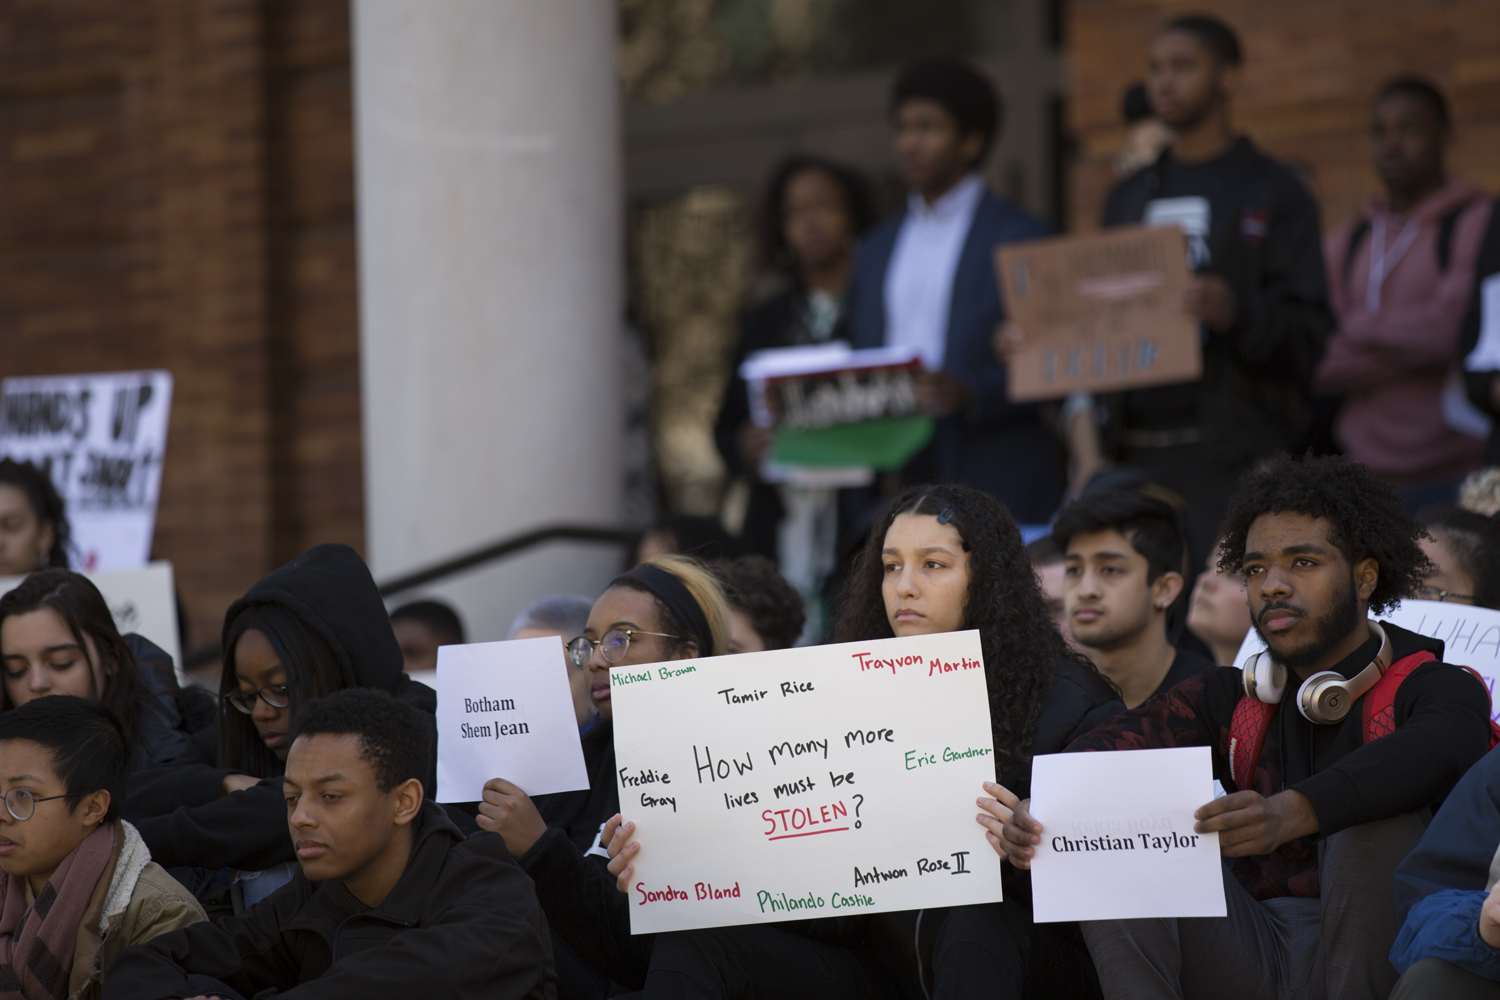 Students sit outside the William Pitt Union  as a part of Black Action Society's die-in demonstration on Wednesday. Protests have occurred on campus and Downtown over the last six days as a result of Michael Rosfeld being found not guilty after being charged with homicide for his June 2018 fatal shooting of Antwon Rose.